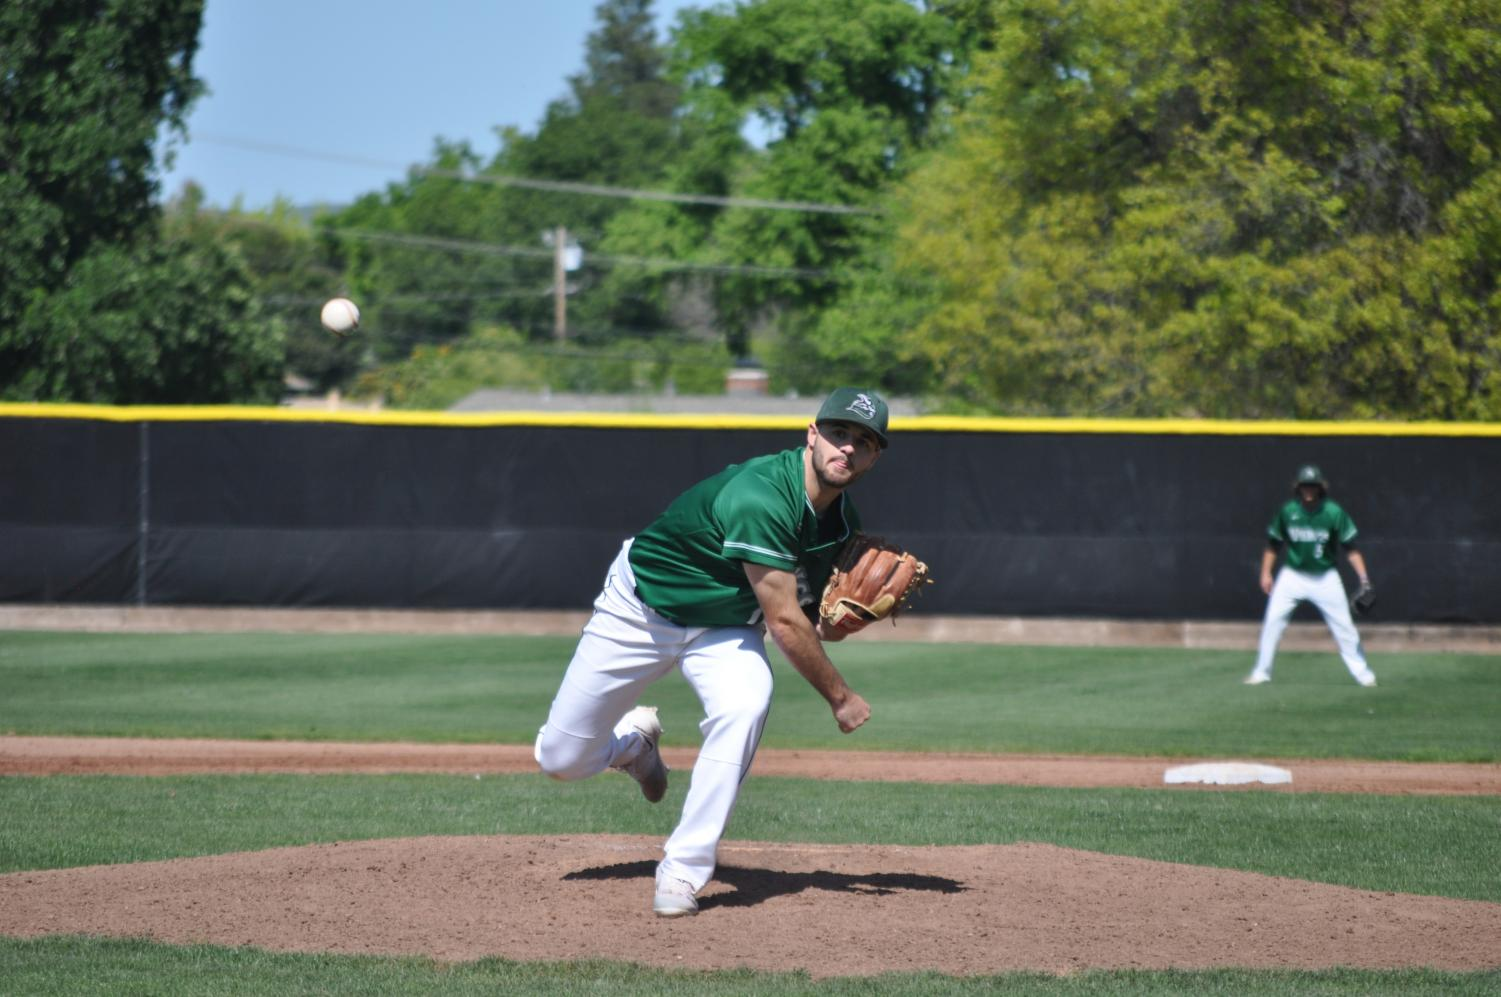 Pitcher Evan Gravenmier during his start against American River College in Pleasant Hill on April 13, 2018.